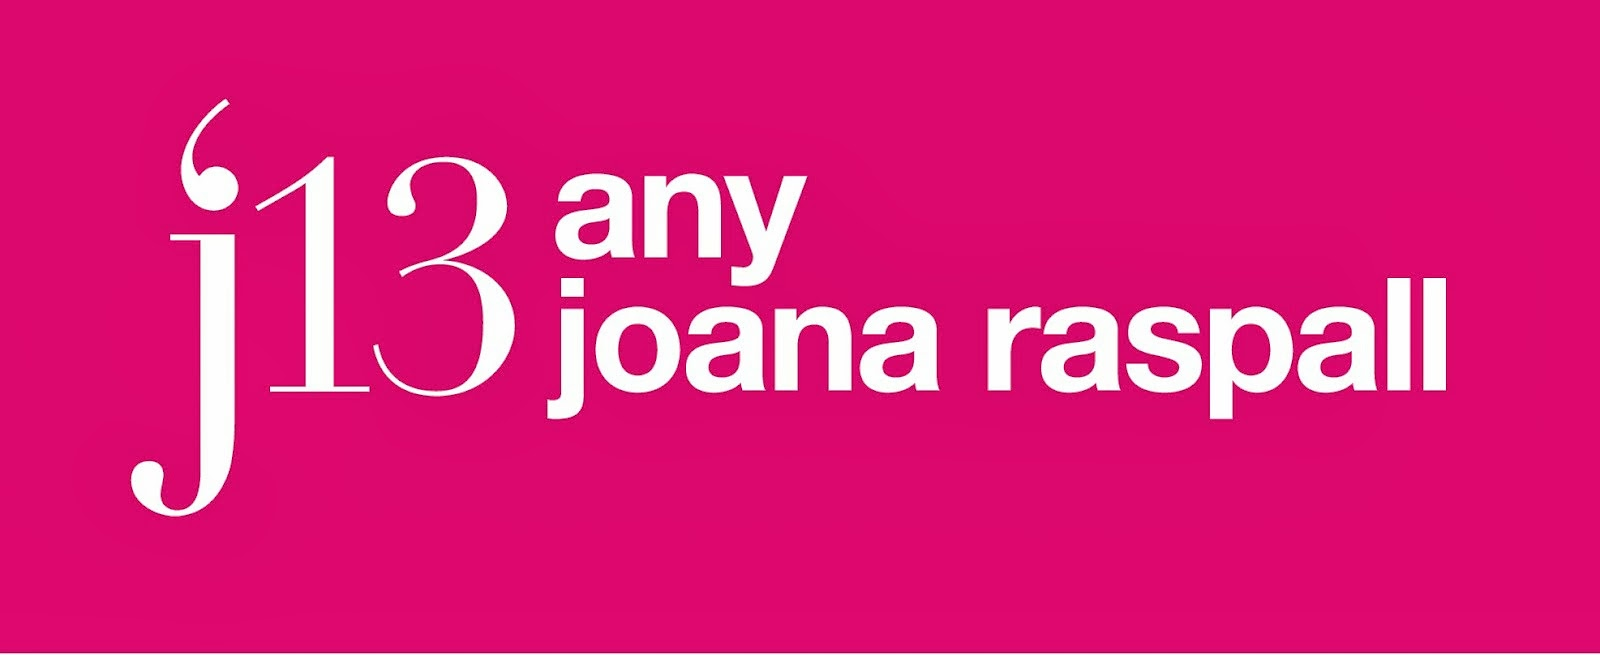 Any Joana Raspall